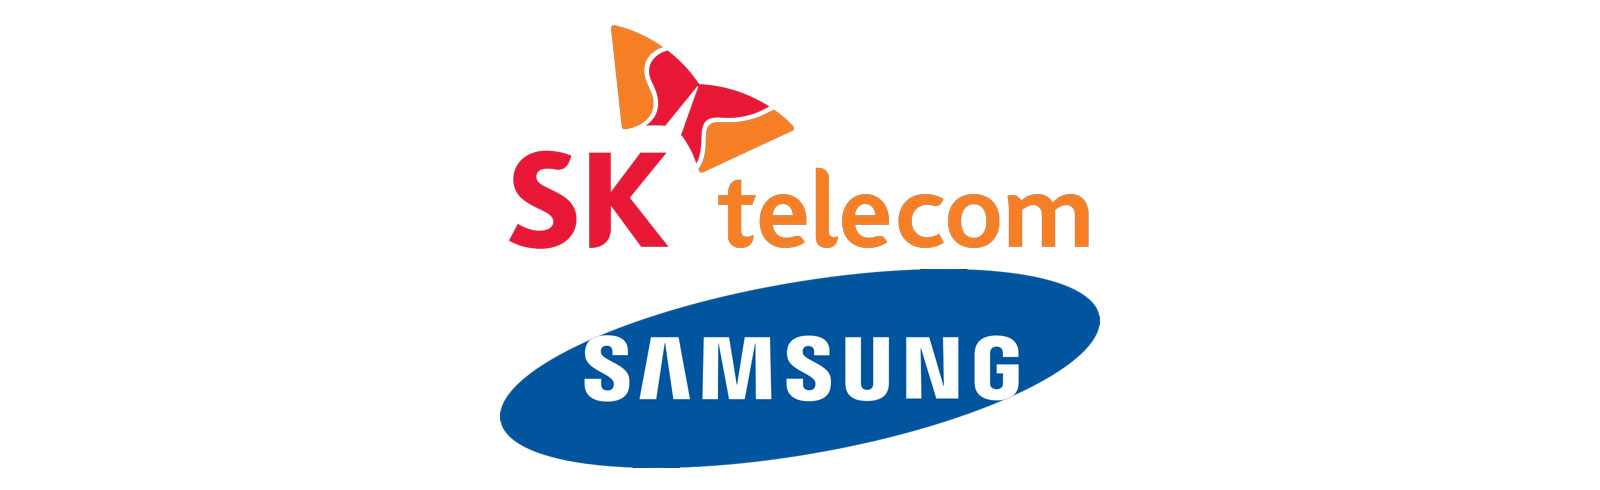 SK Telecom and Samsung sign an agreement for 5G upgrade and 6G R&D